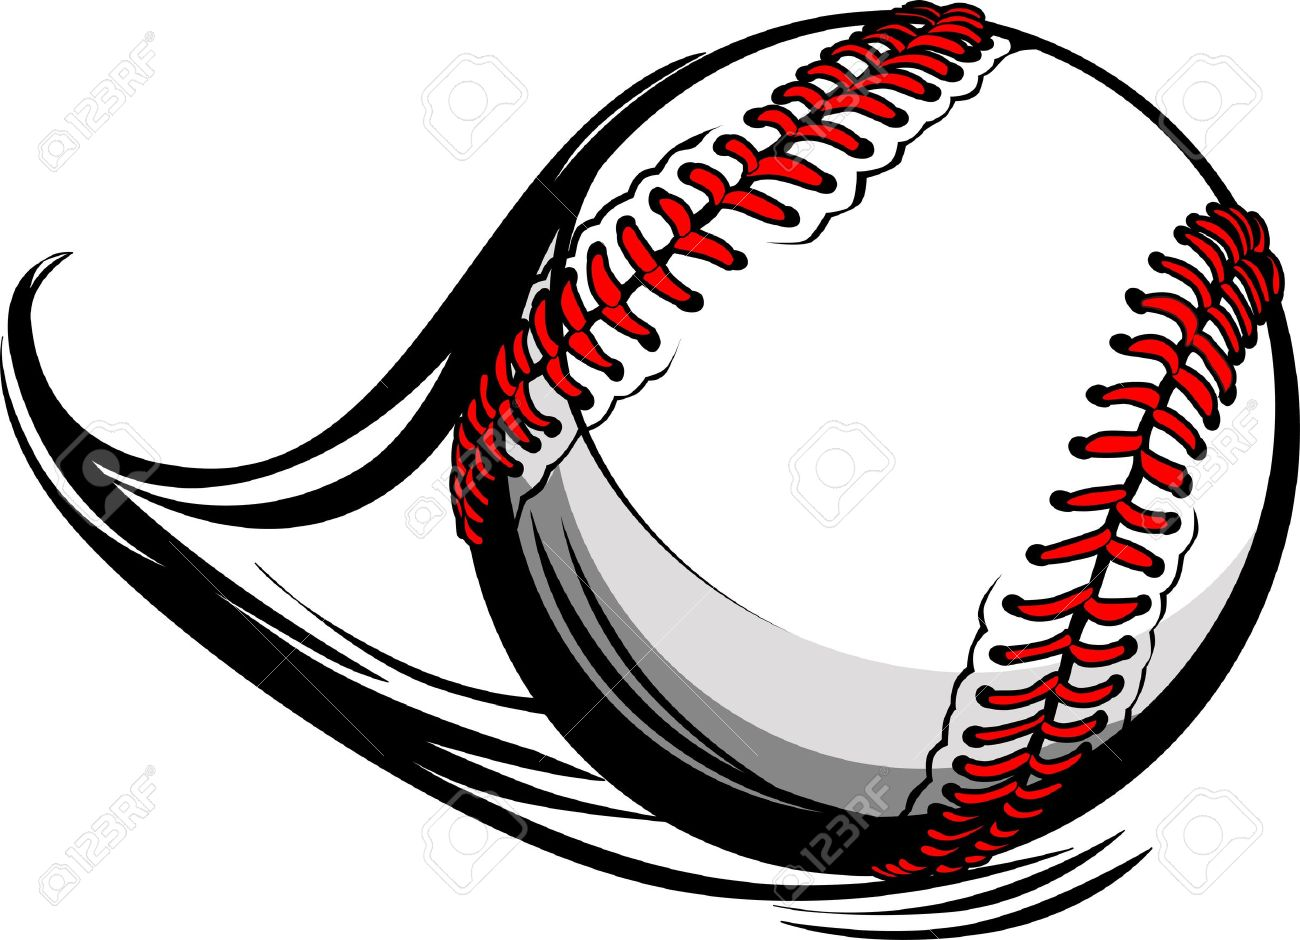 Illustration of Softball or Baseball with Movement Motion Lines.